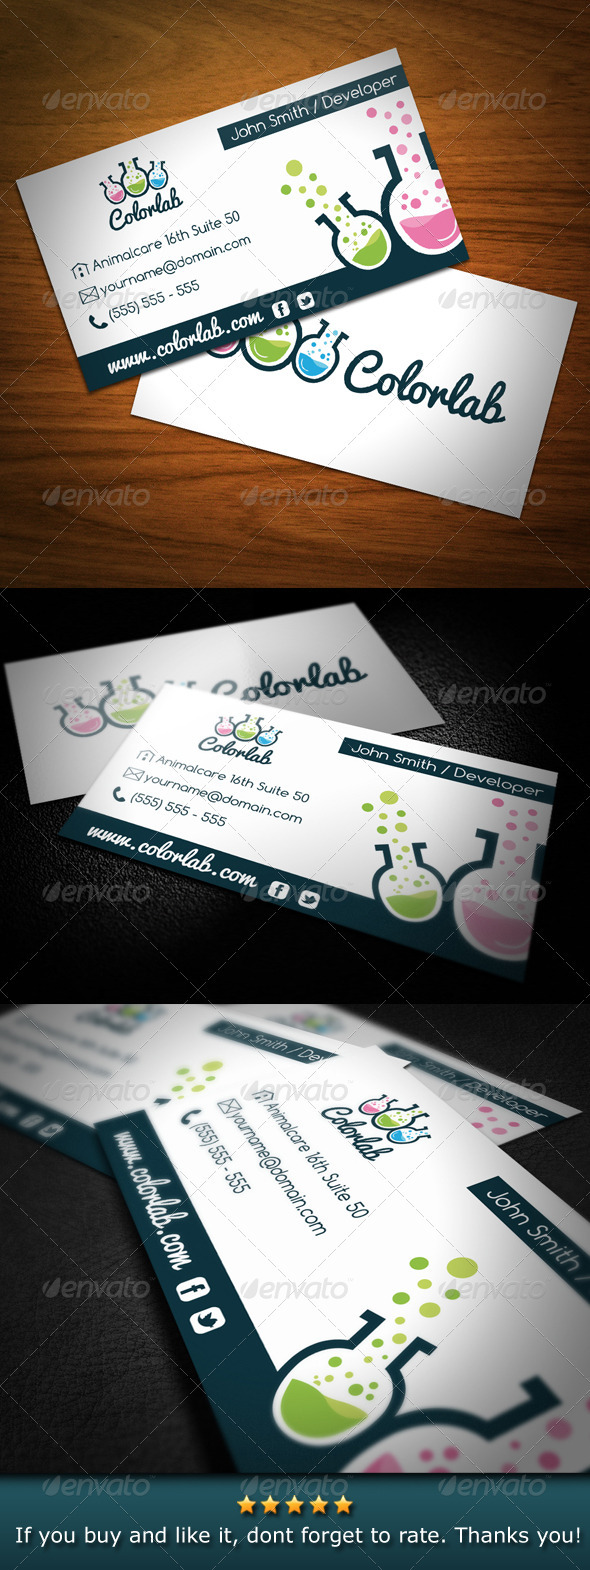 Color Lab Creative Studio Business Card - Creative Business Cards